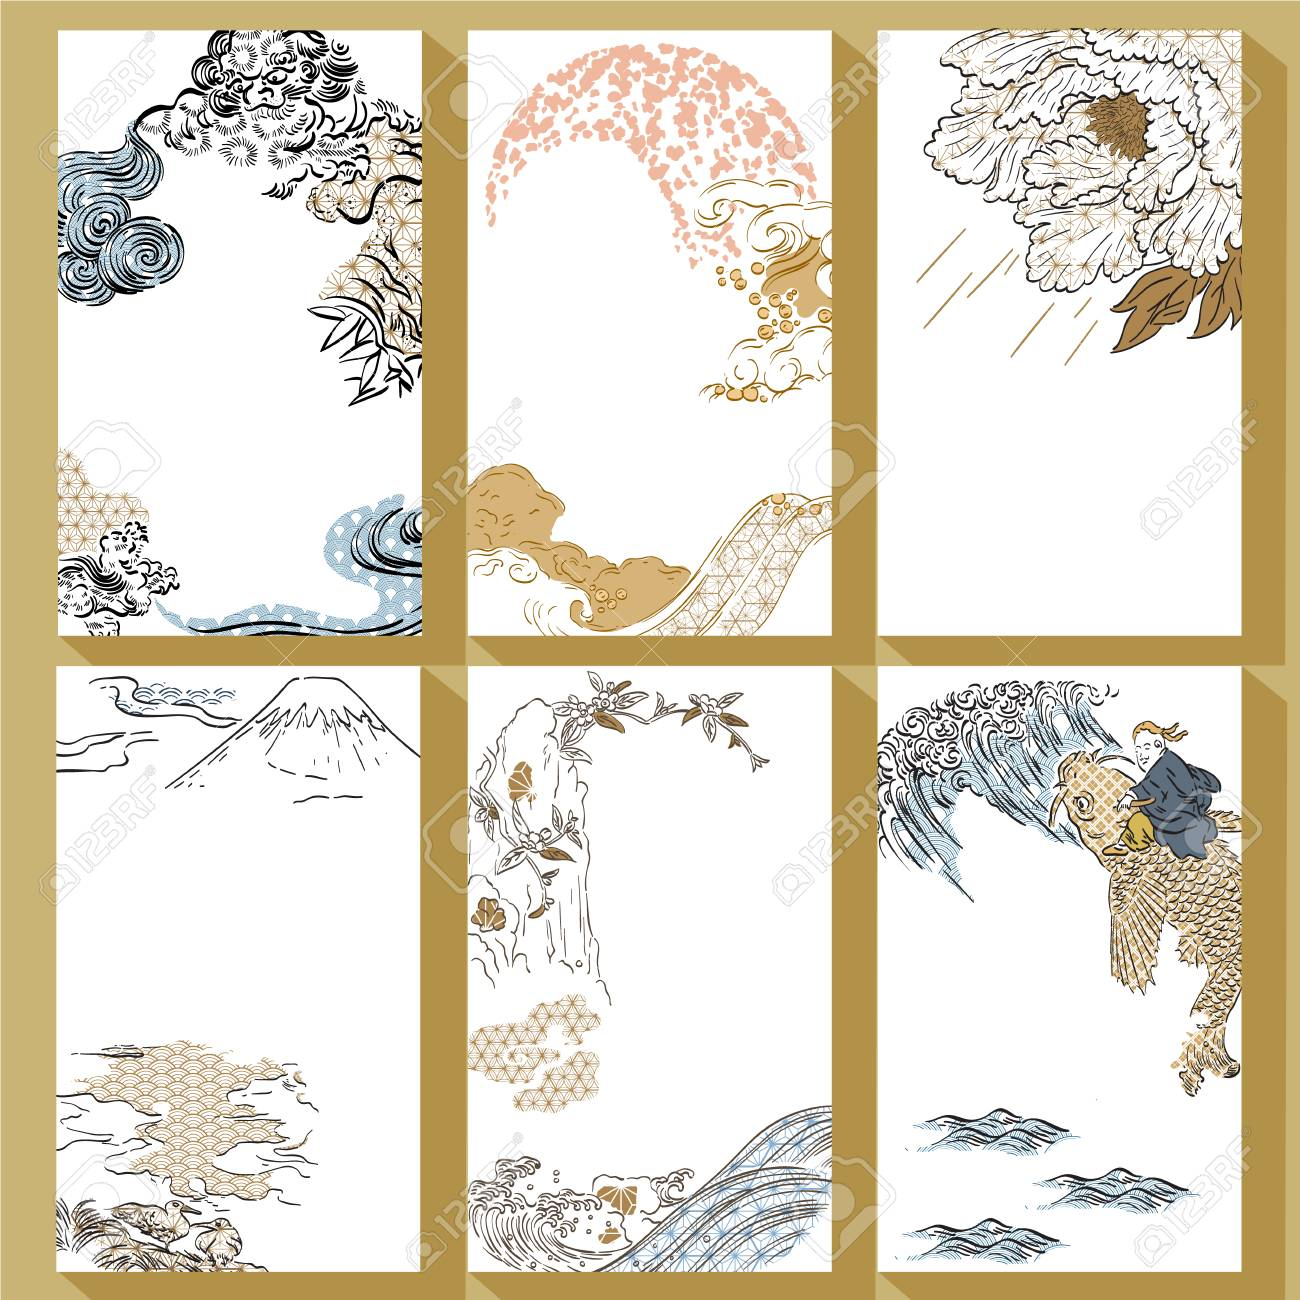 Japanese traditional template vector. Hand drawn brush stroke background. Lion, Fuji mountain, peony, wave, water, carp fish elements. - 106156417